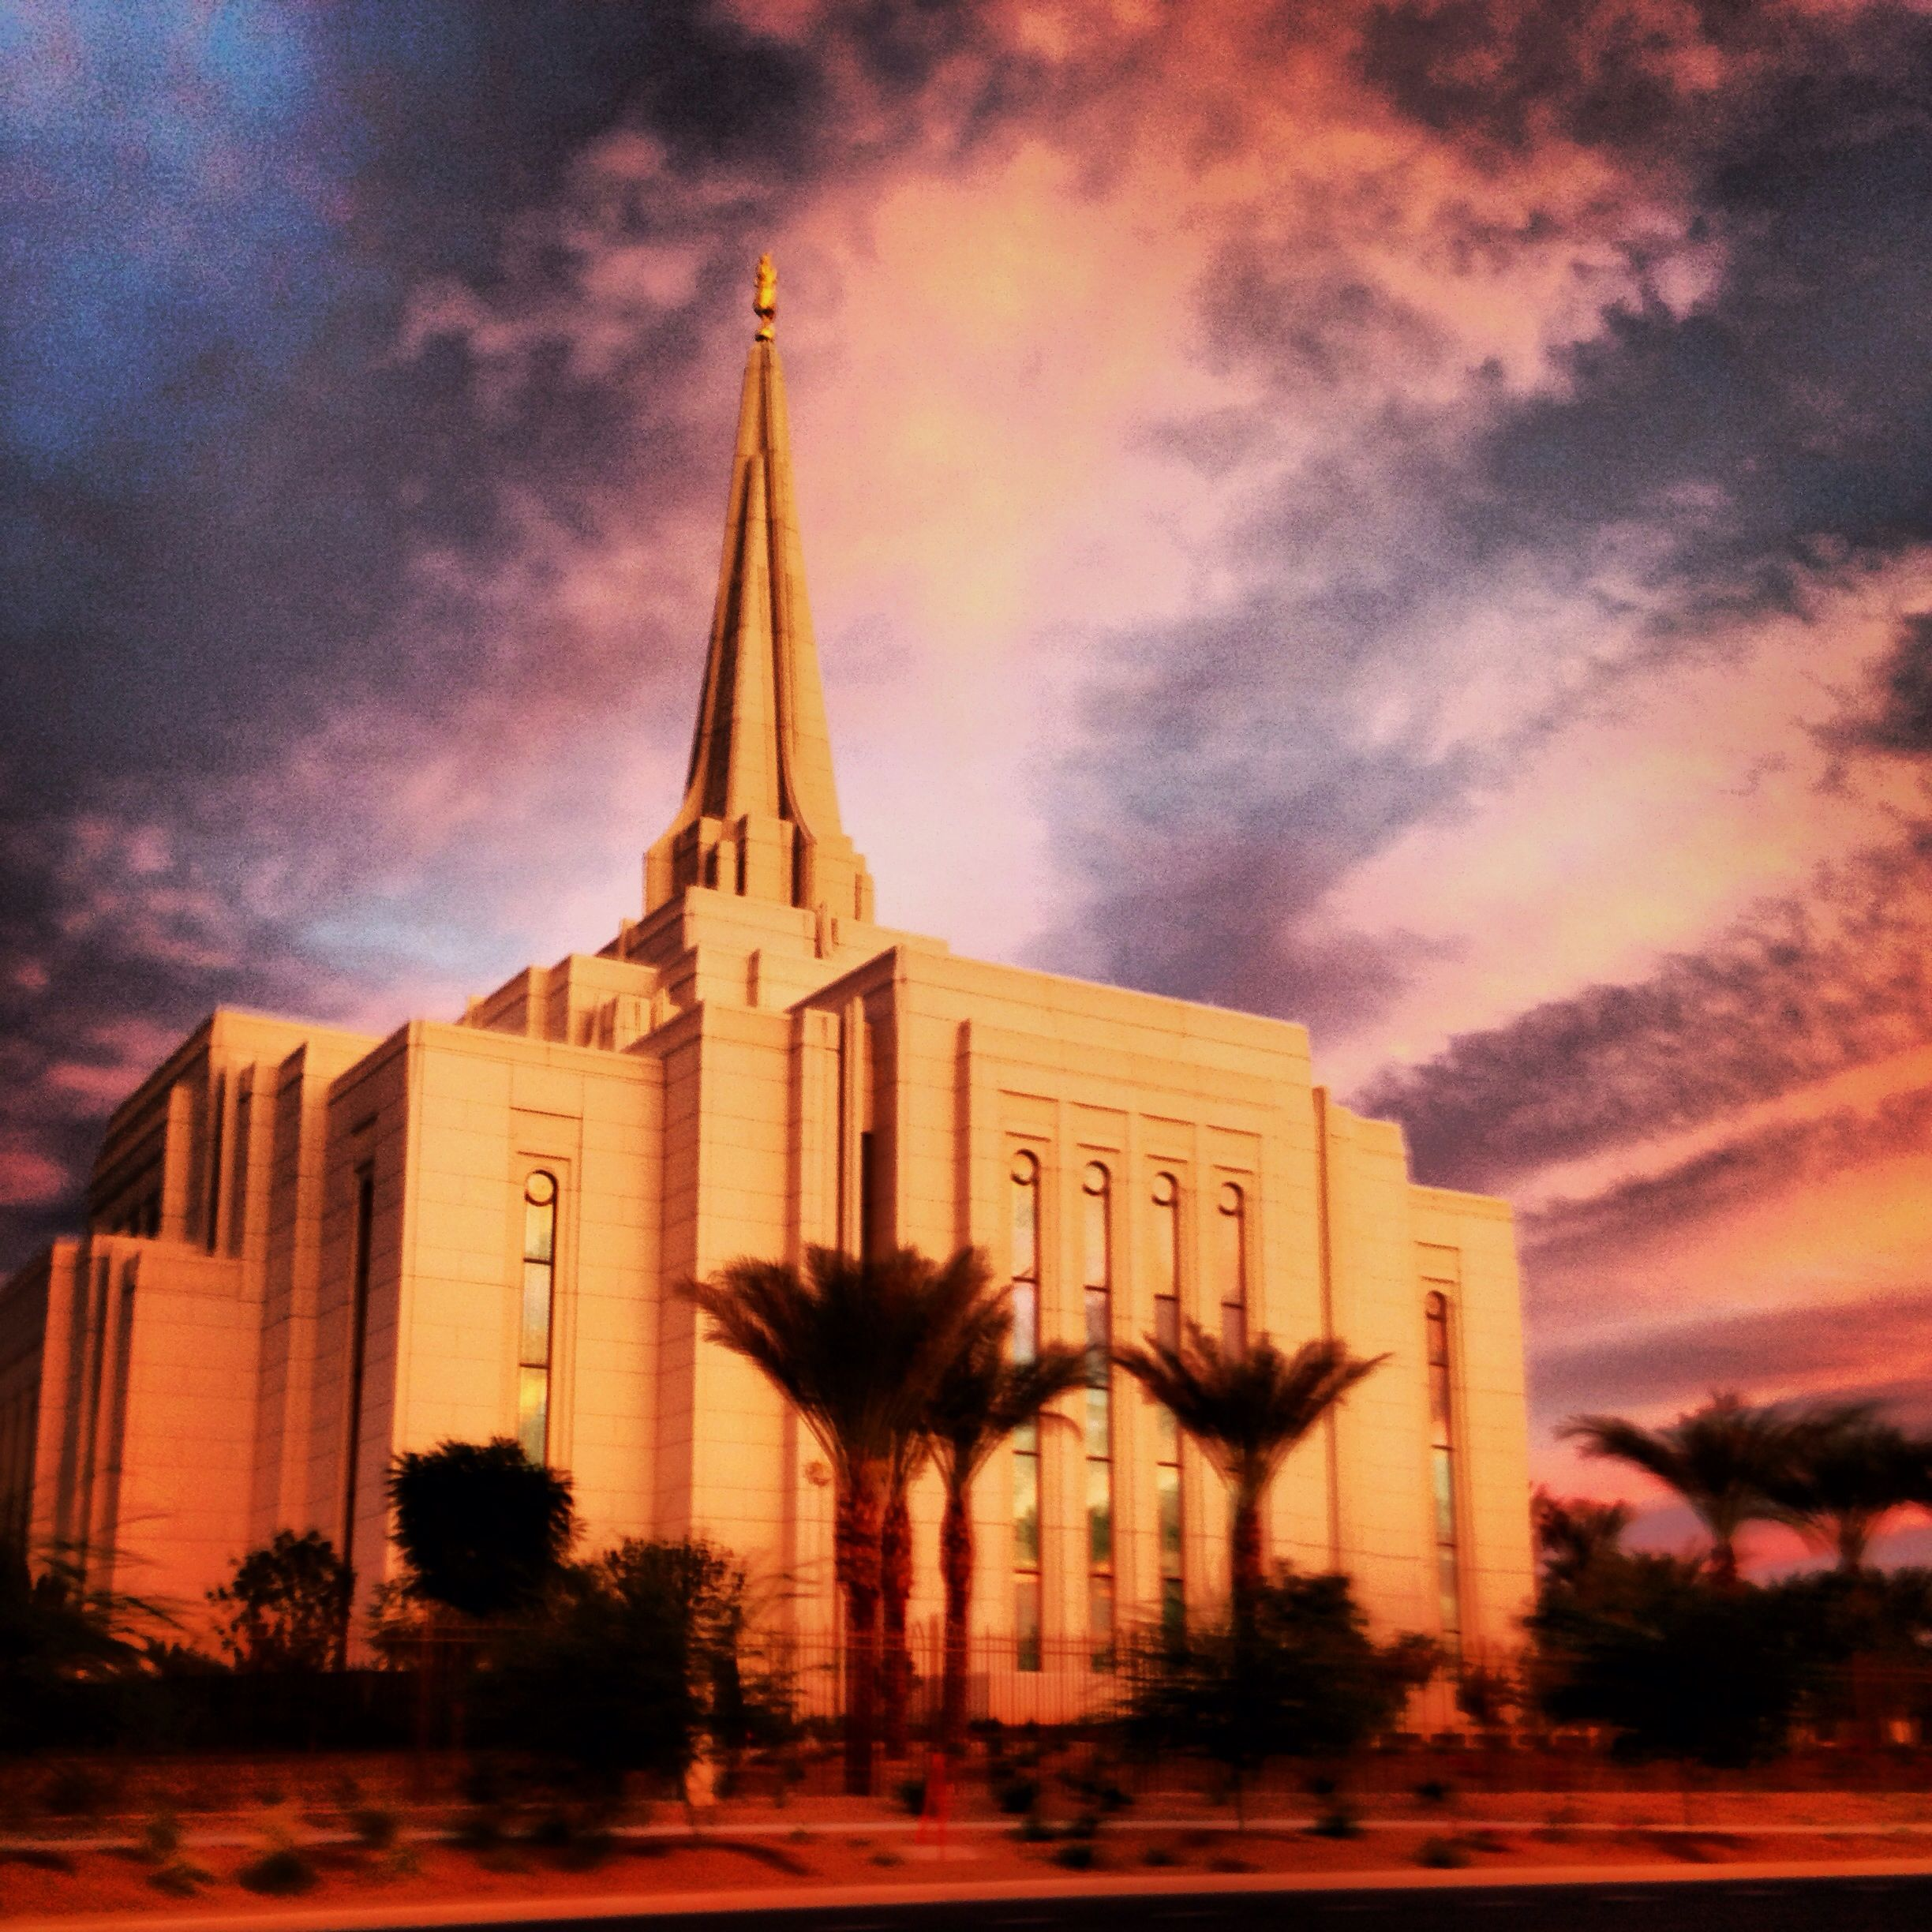 Gilbert LDS temple today while driving.